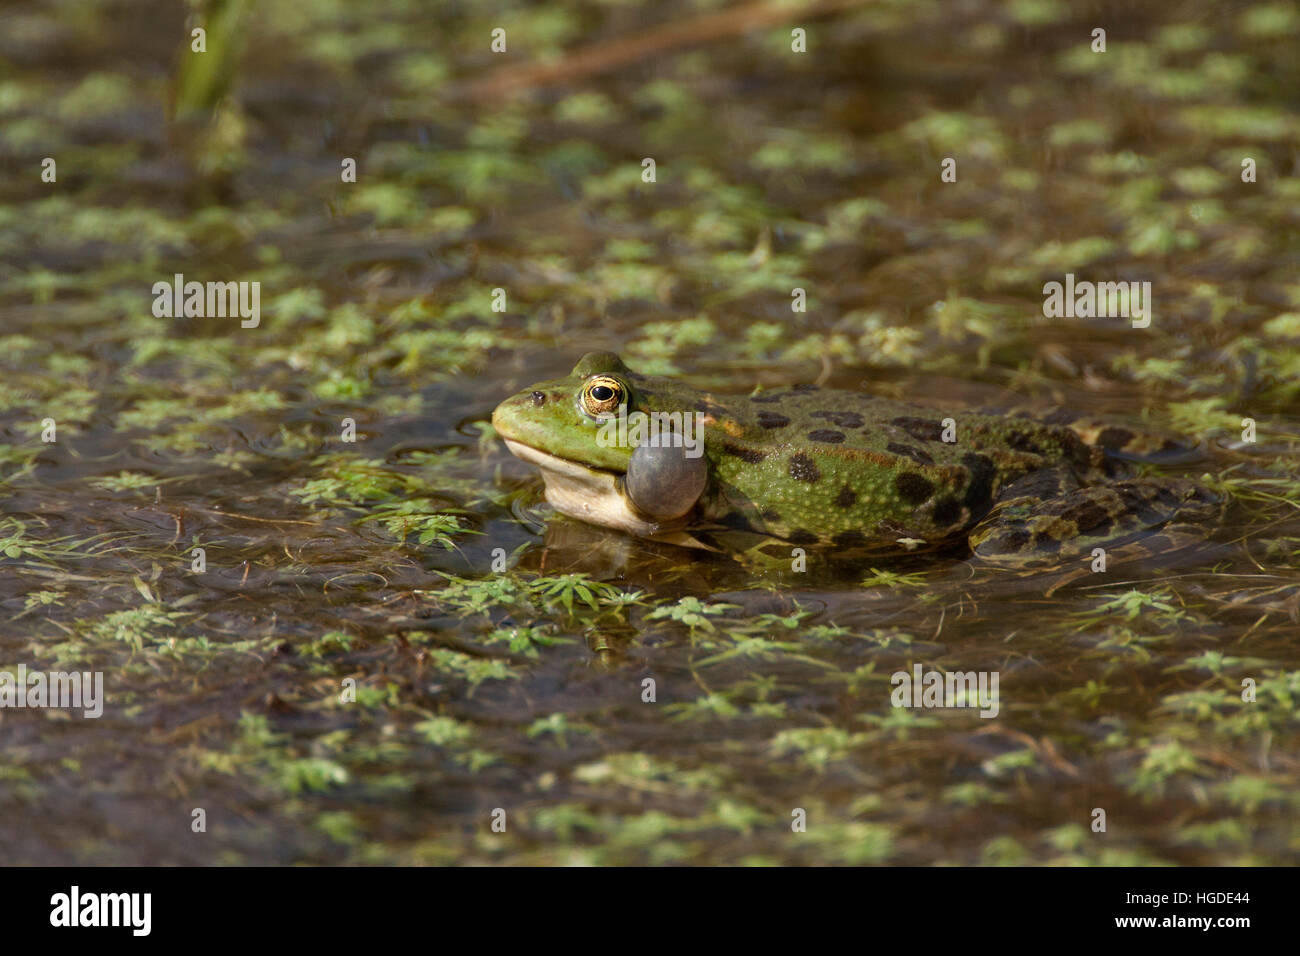 Marsh Frog, Rana ridibunda,  Single adult calling. Rainham Marshes, Essex, UK. - Stock Image